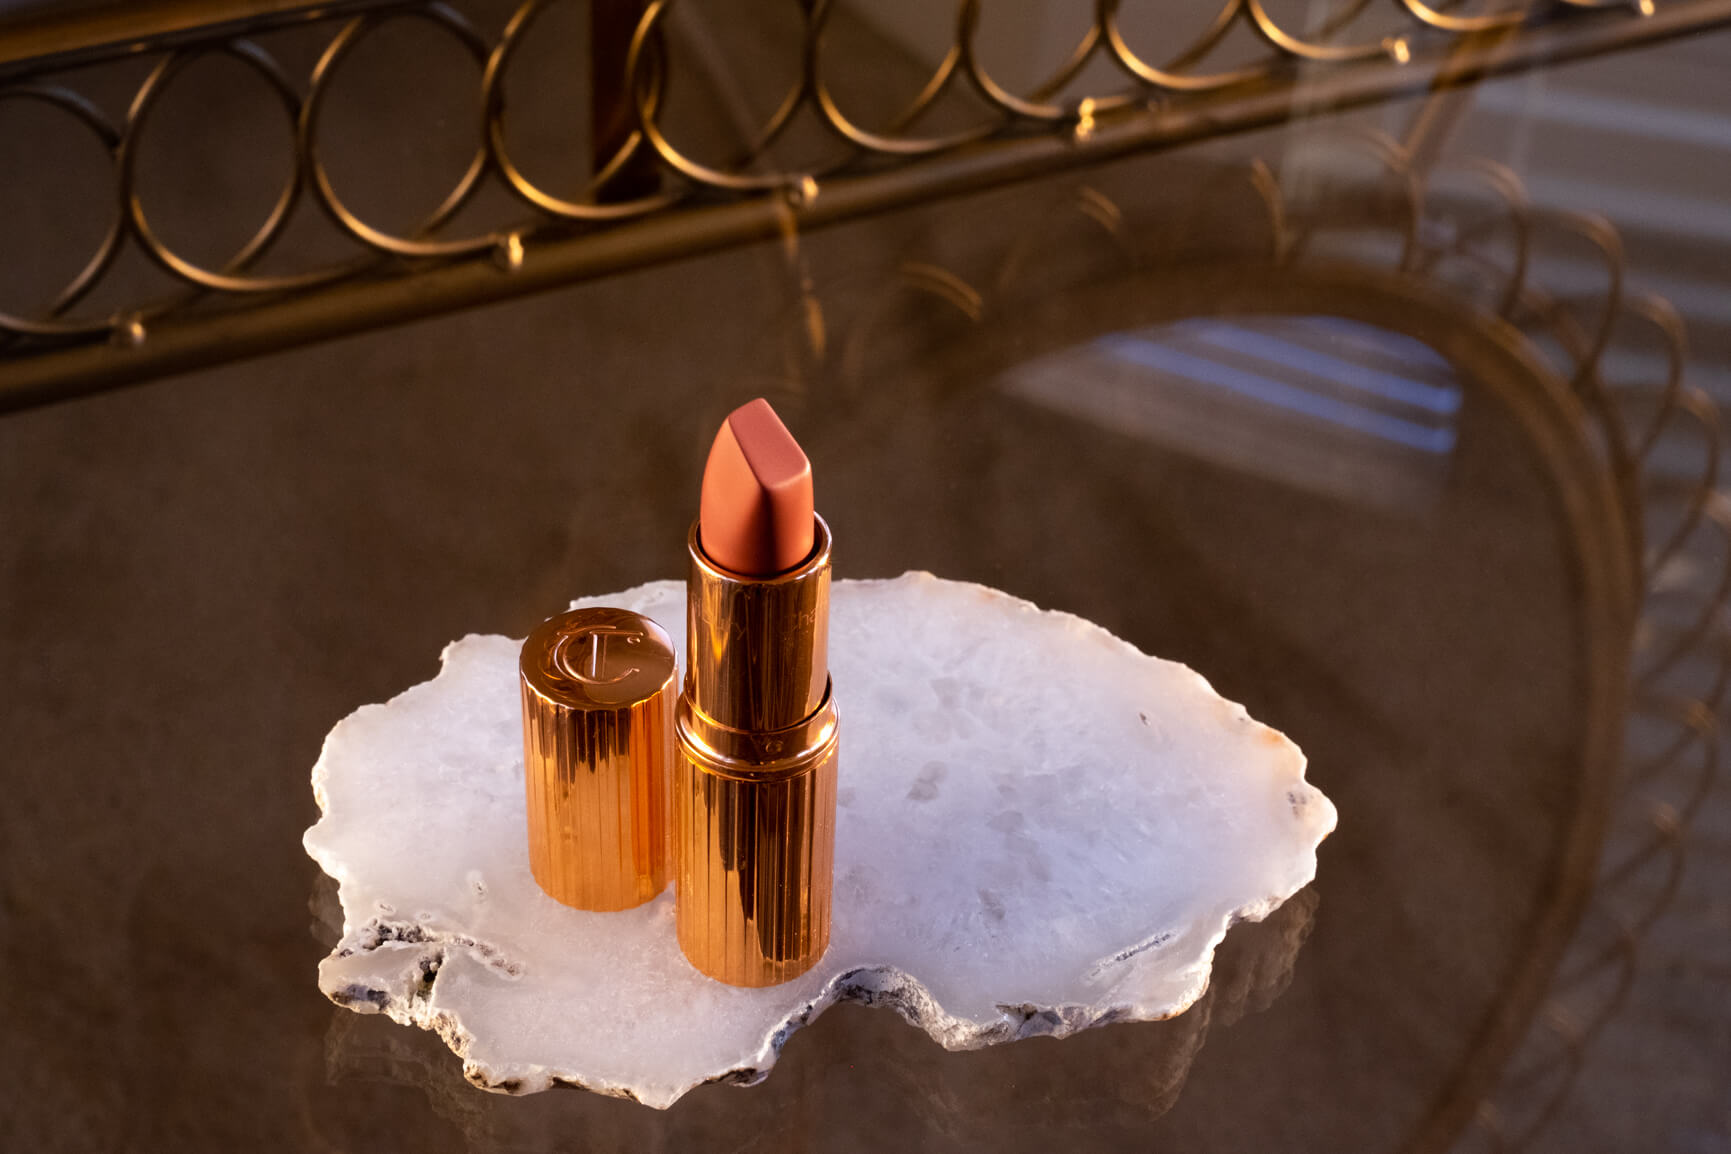 Charlotte Tilbury Pillow Talk lipstick bullet on vanity table